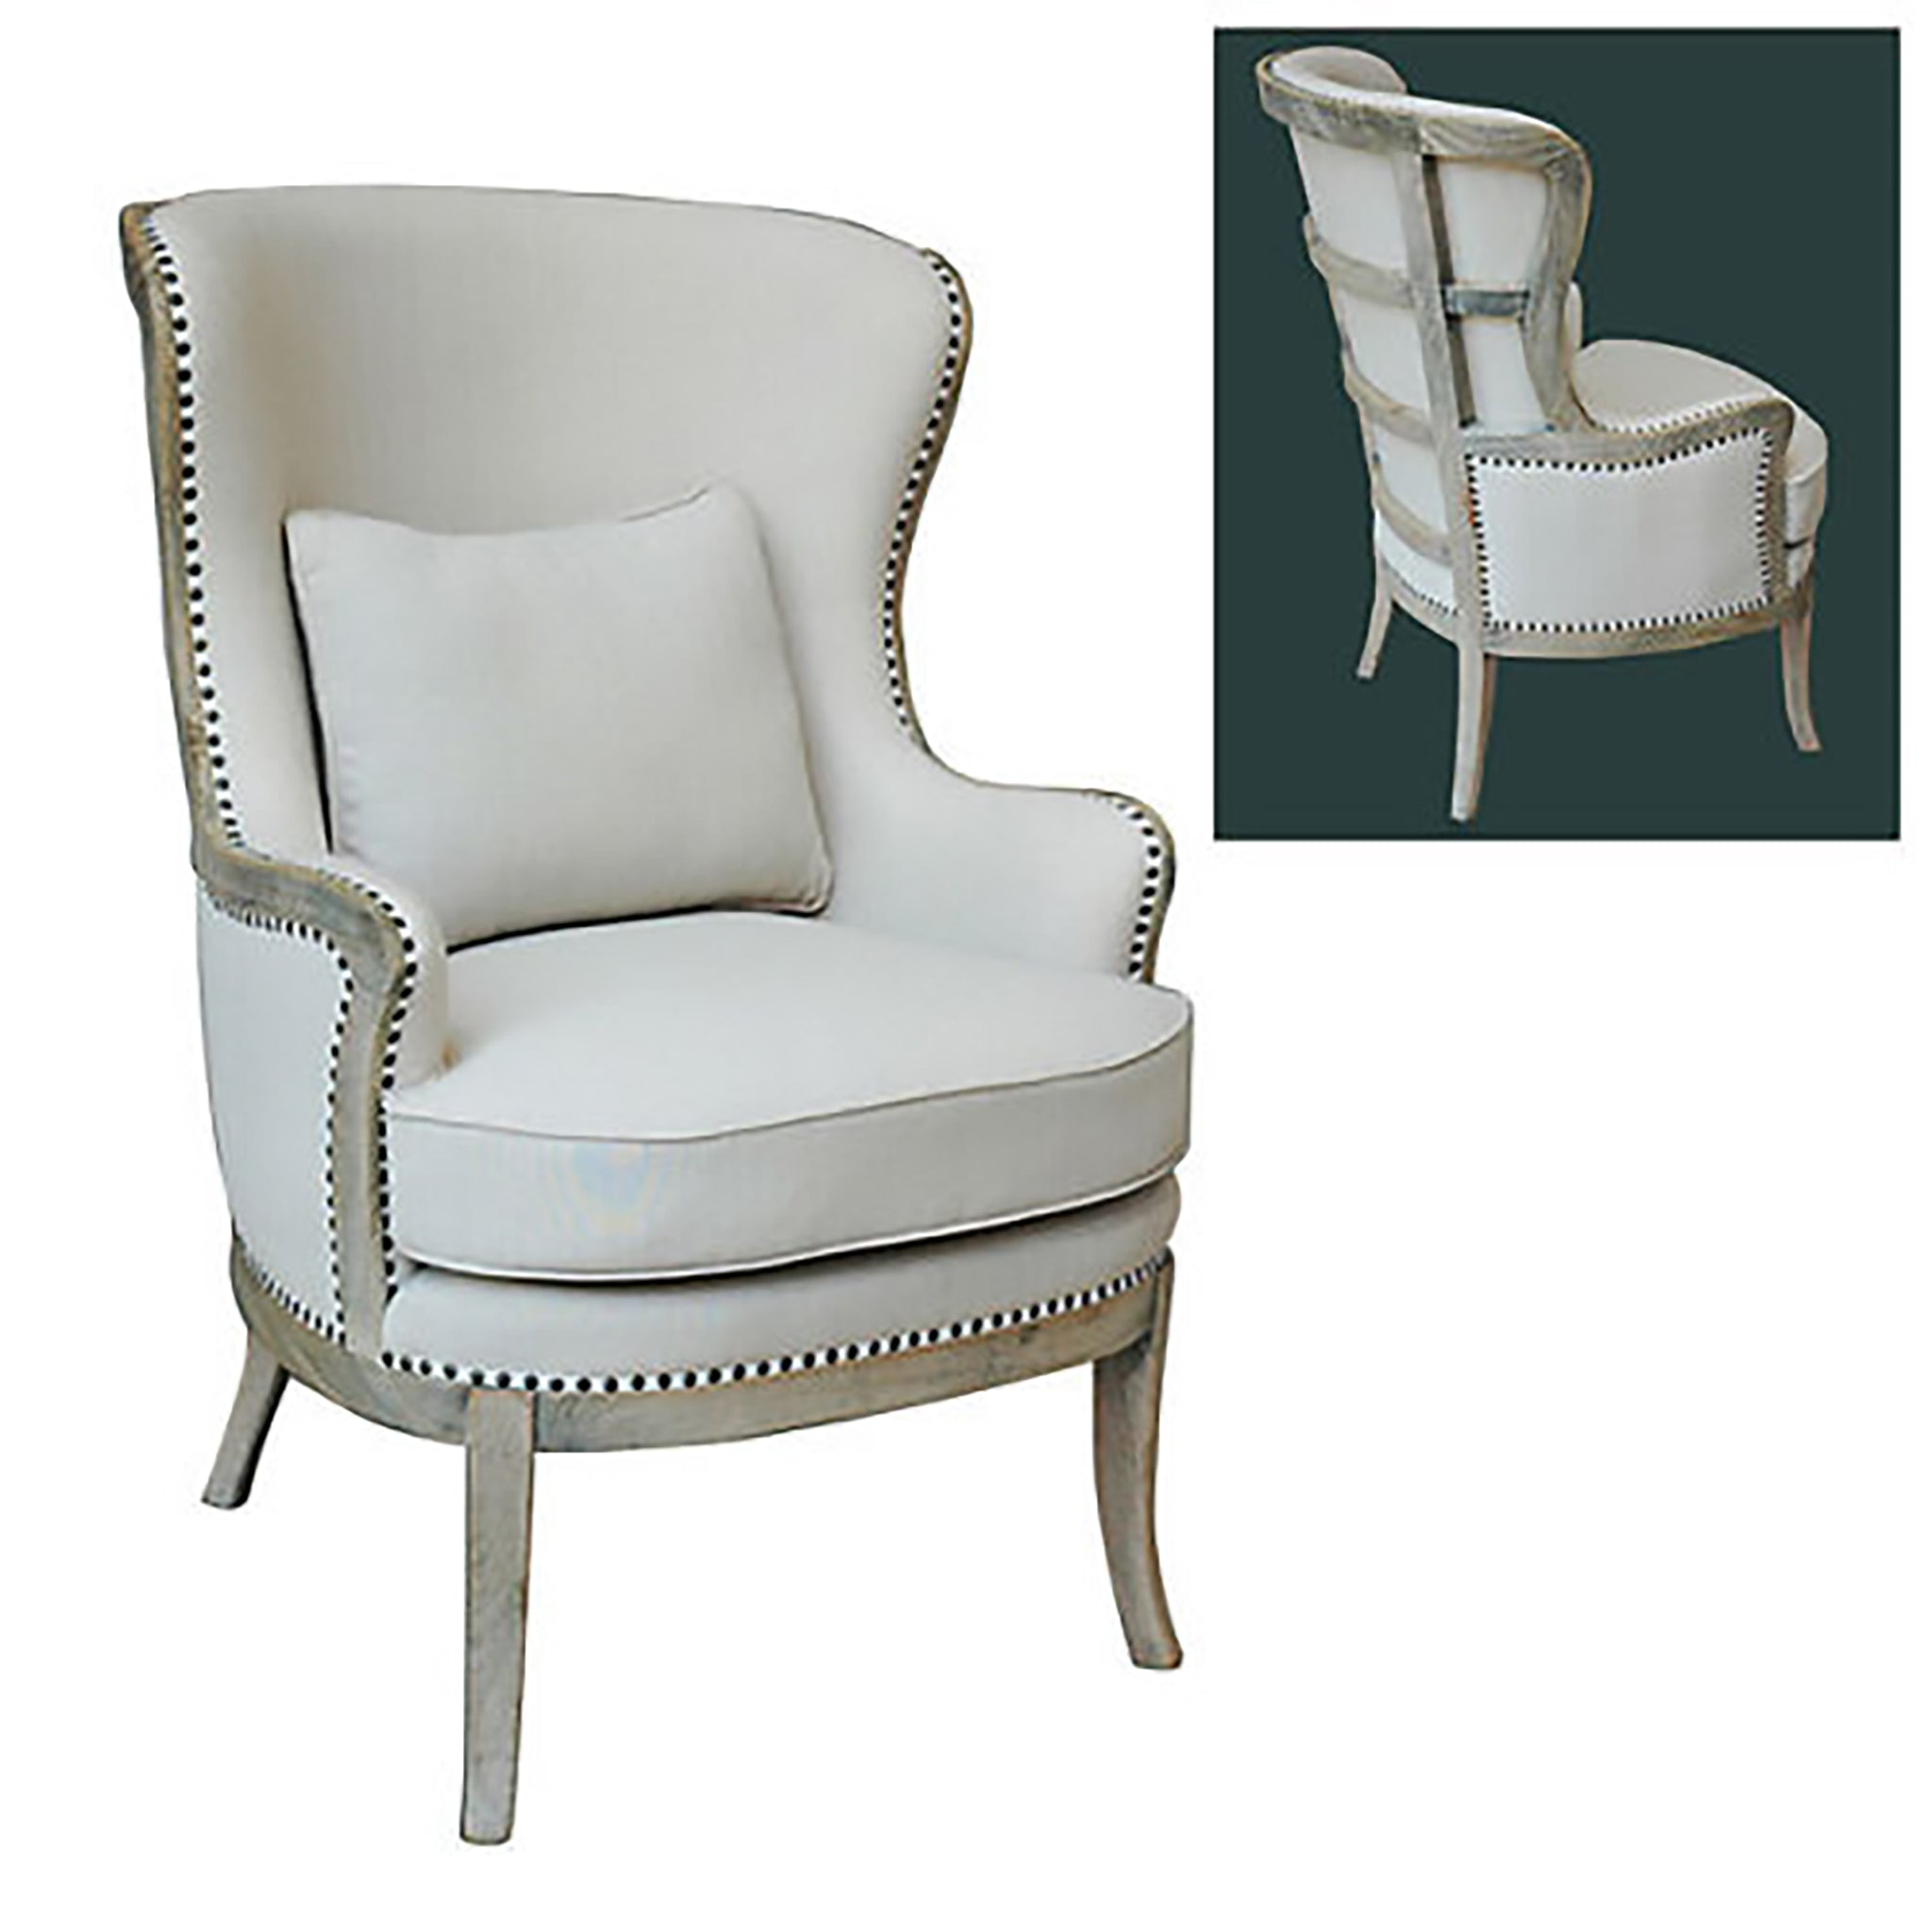 French Upholstered Accent Armchair, Linen-Wood Accented Back - Furniture on Main